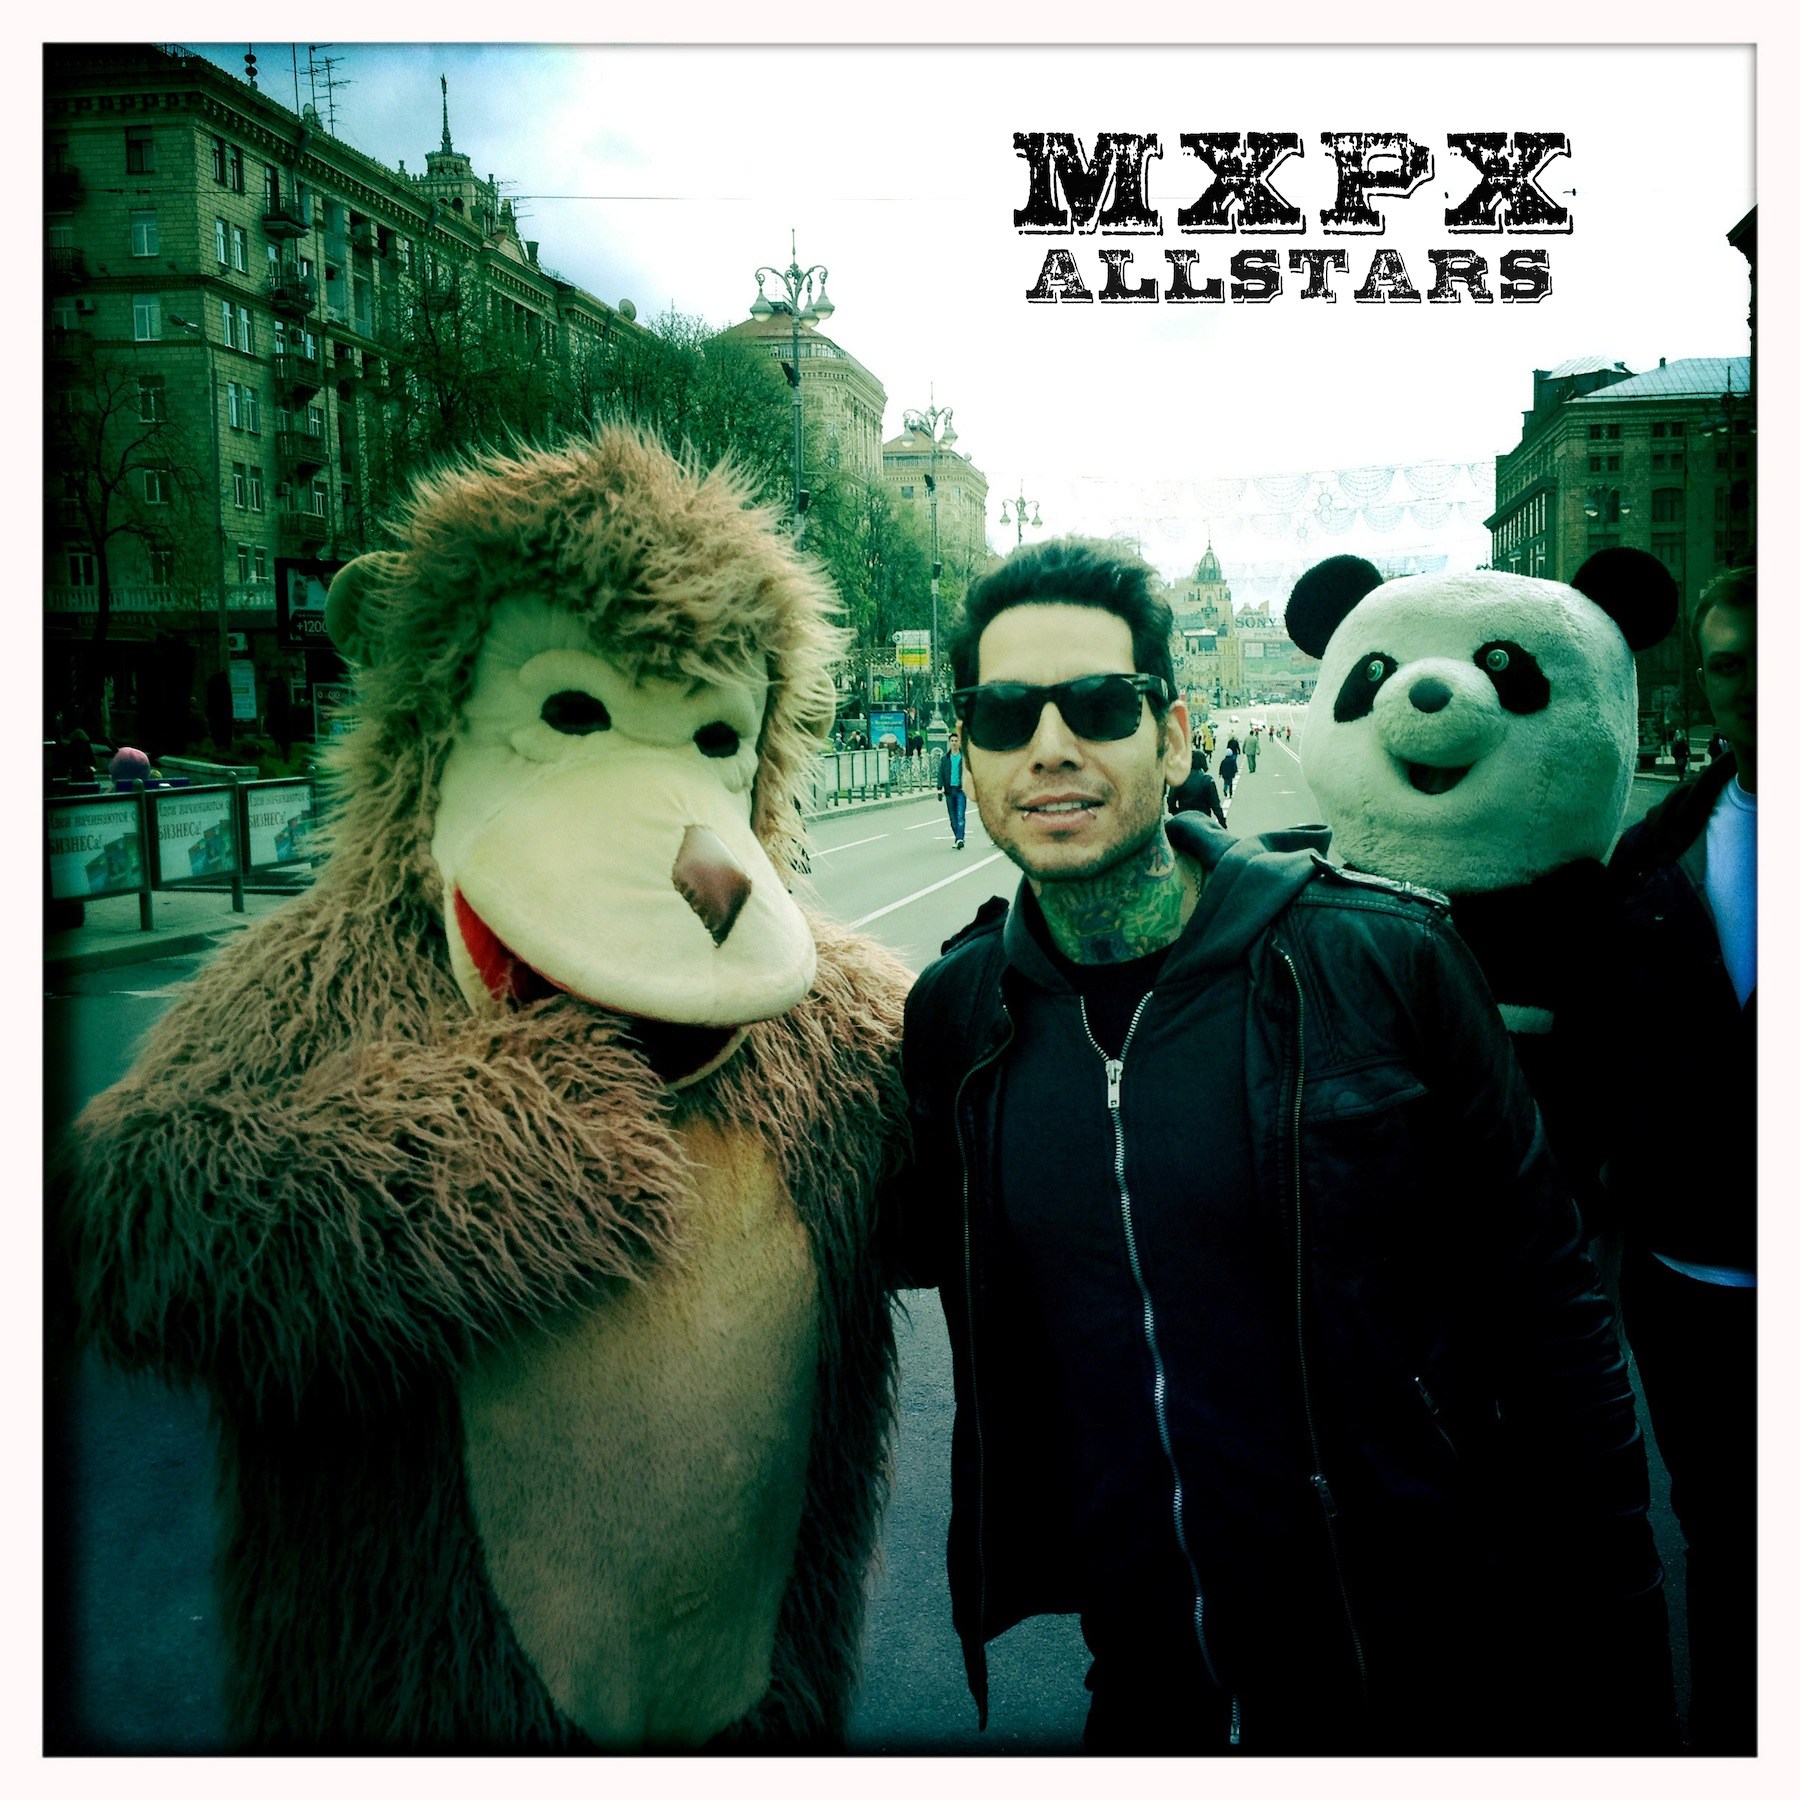 Mike Herrera of MxPx (Allstars)